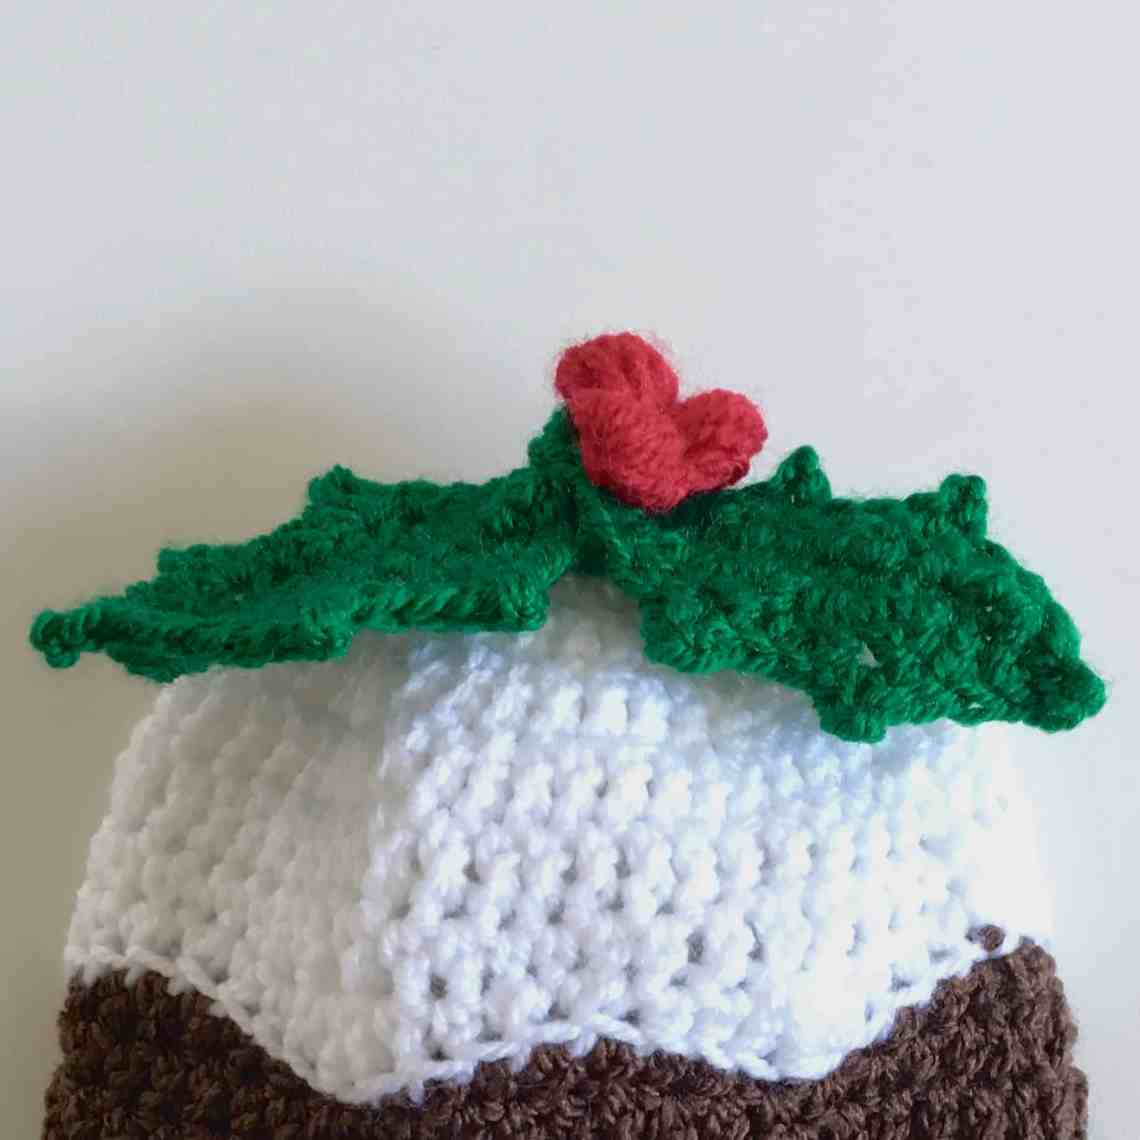 crochet christmas pudding hat with holly sprig and berries